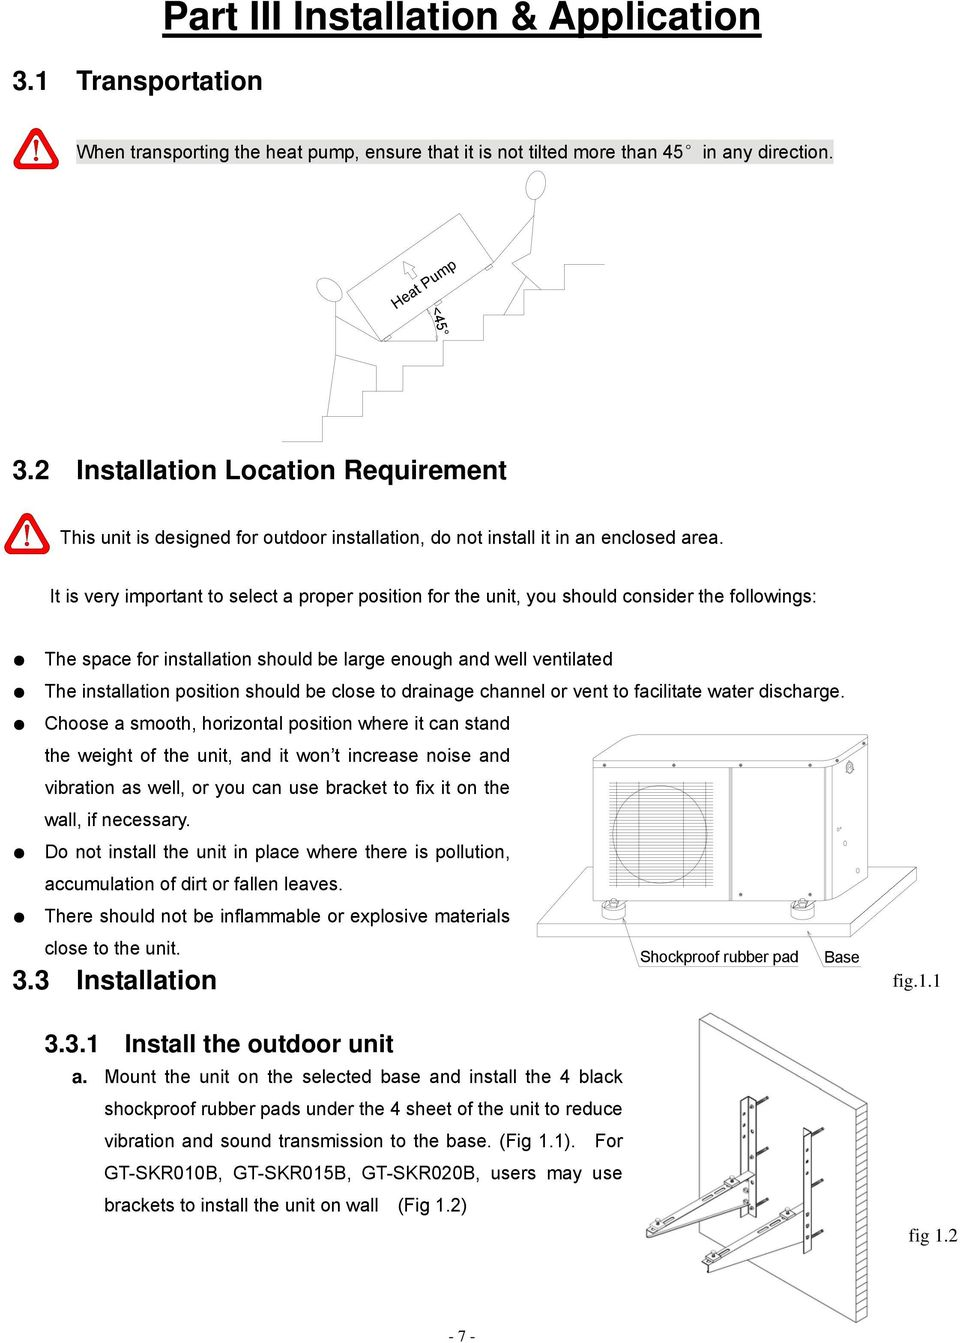 Instruction Manual Model Gt Skr010b Skr015b Skr020b Outlet How To Install Electrical Switch Included Type It Is Very Important Select A Proper Position For The Unit You Should Consider